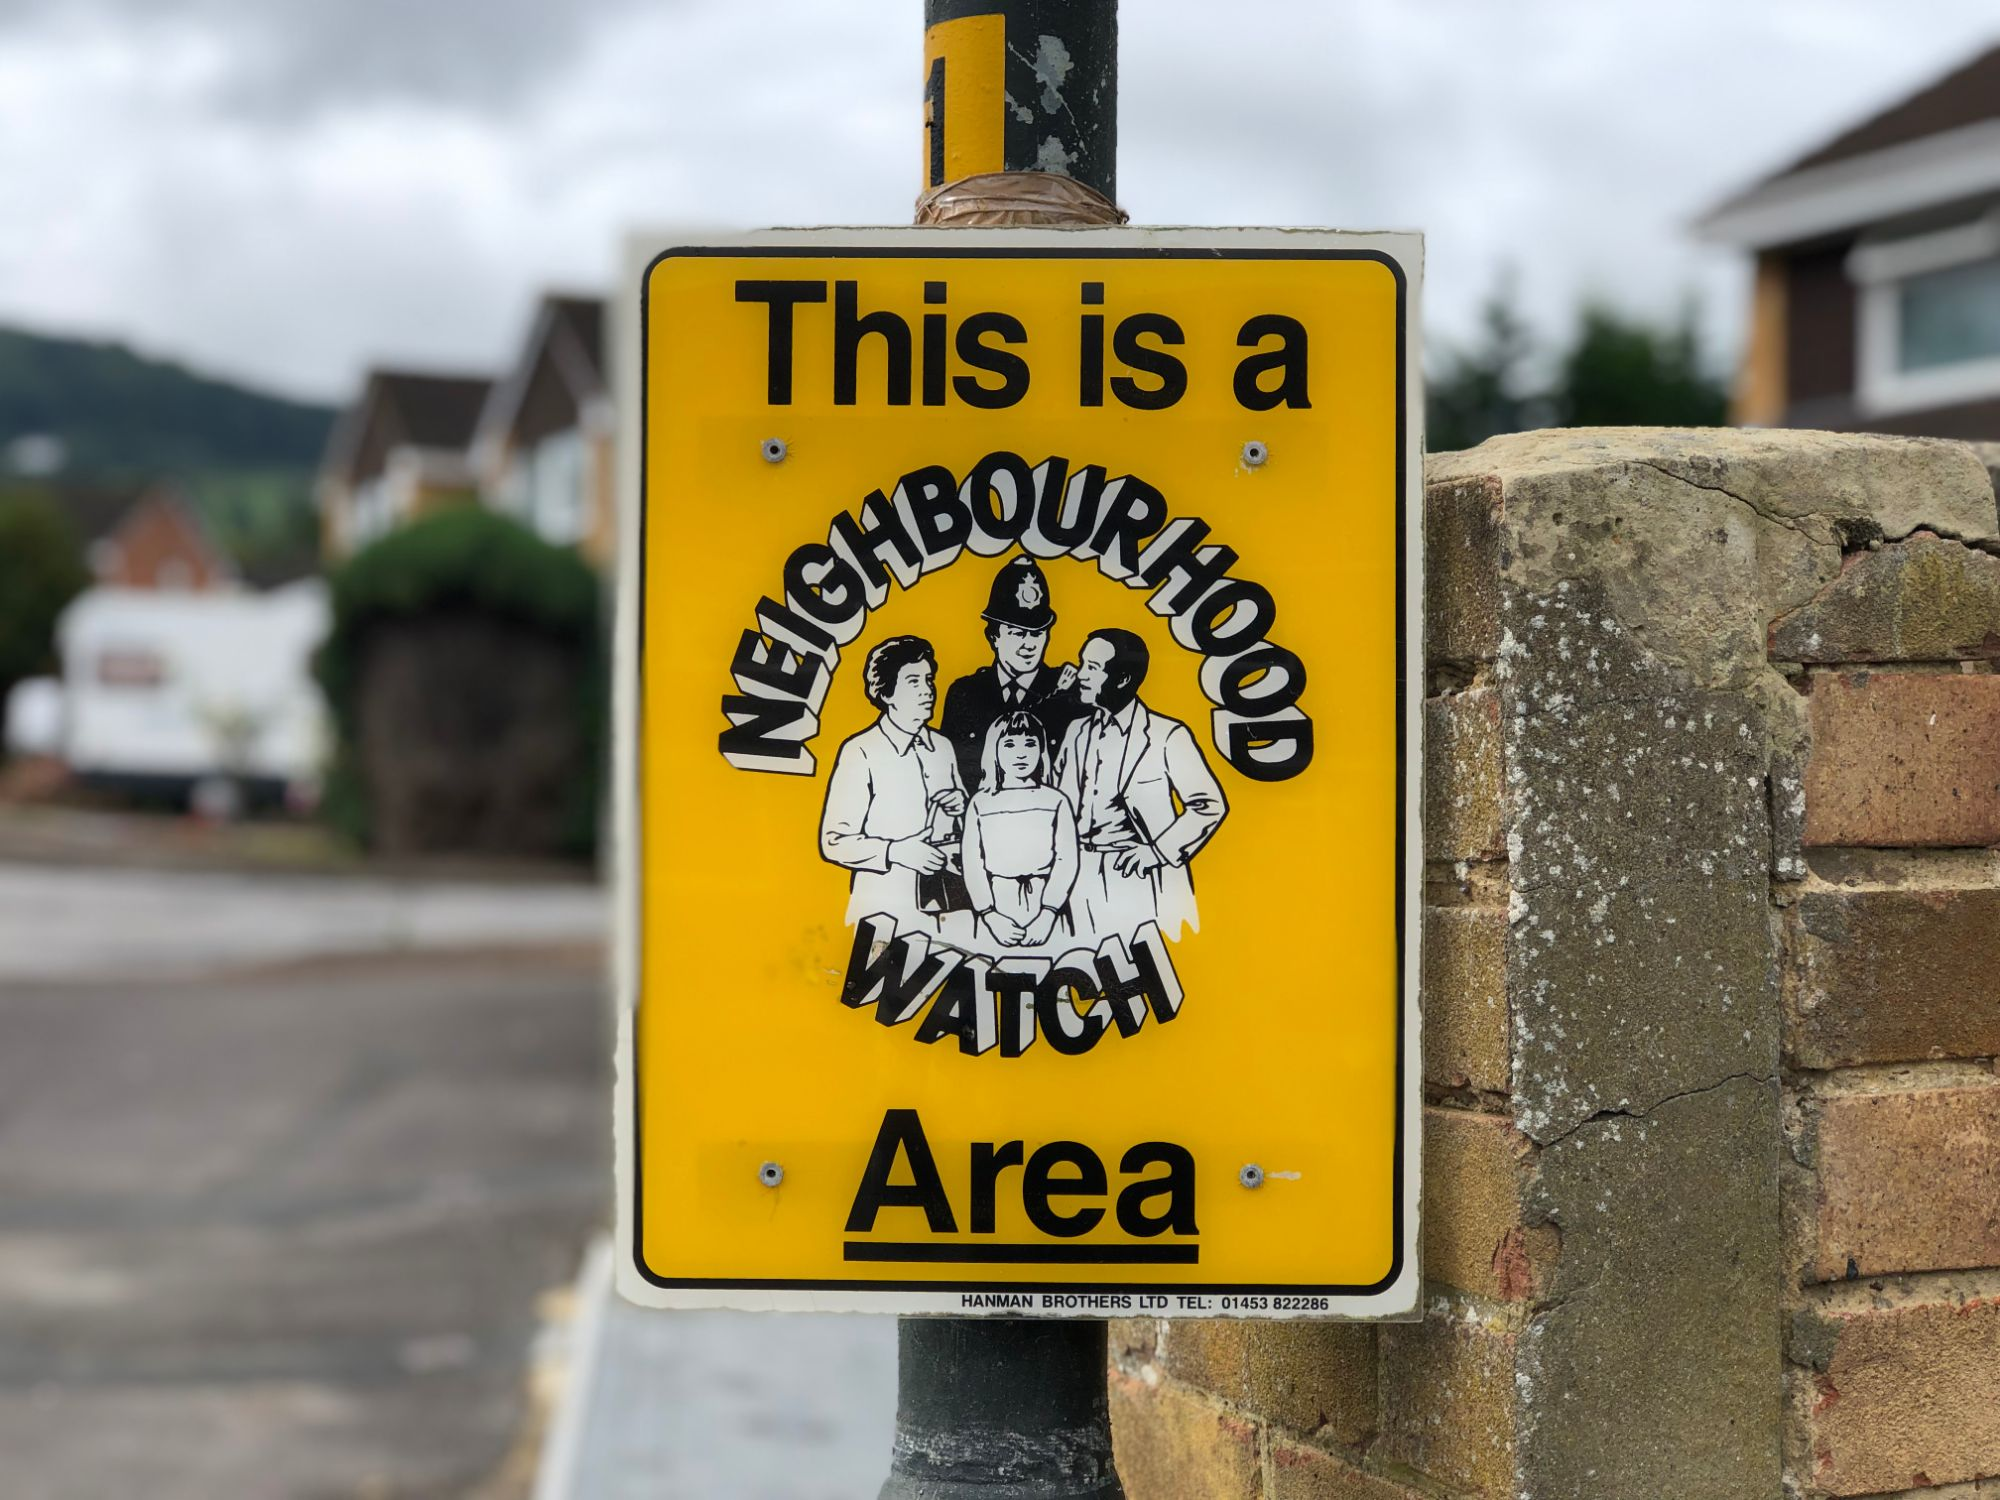 free stock image photo this is a neighbourhood watch area